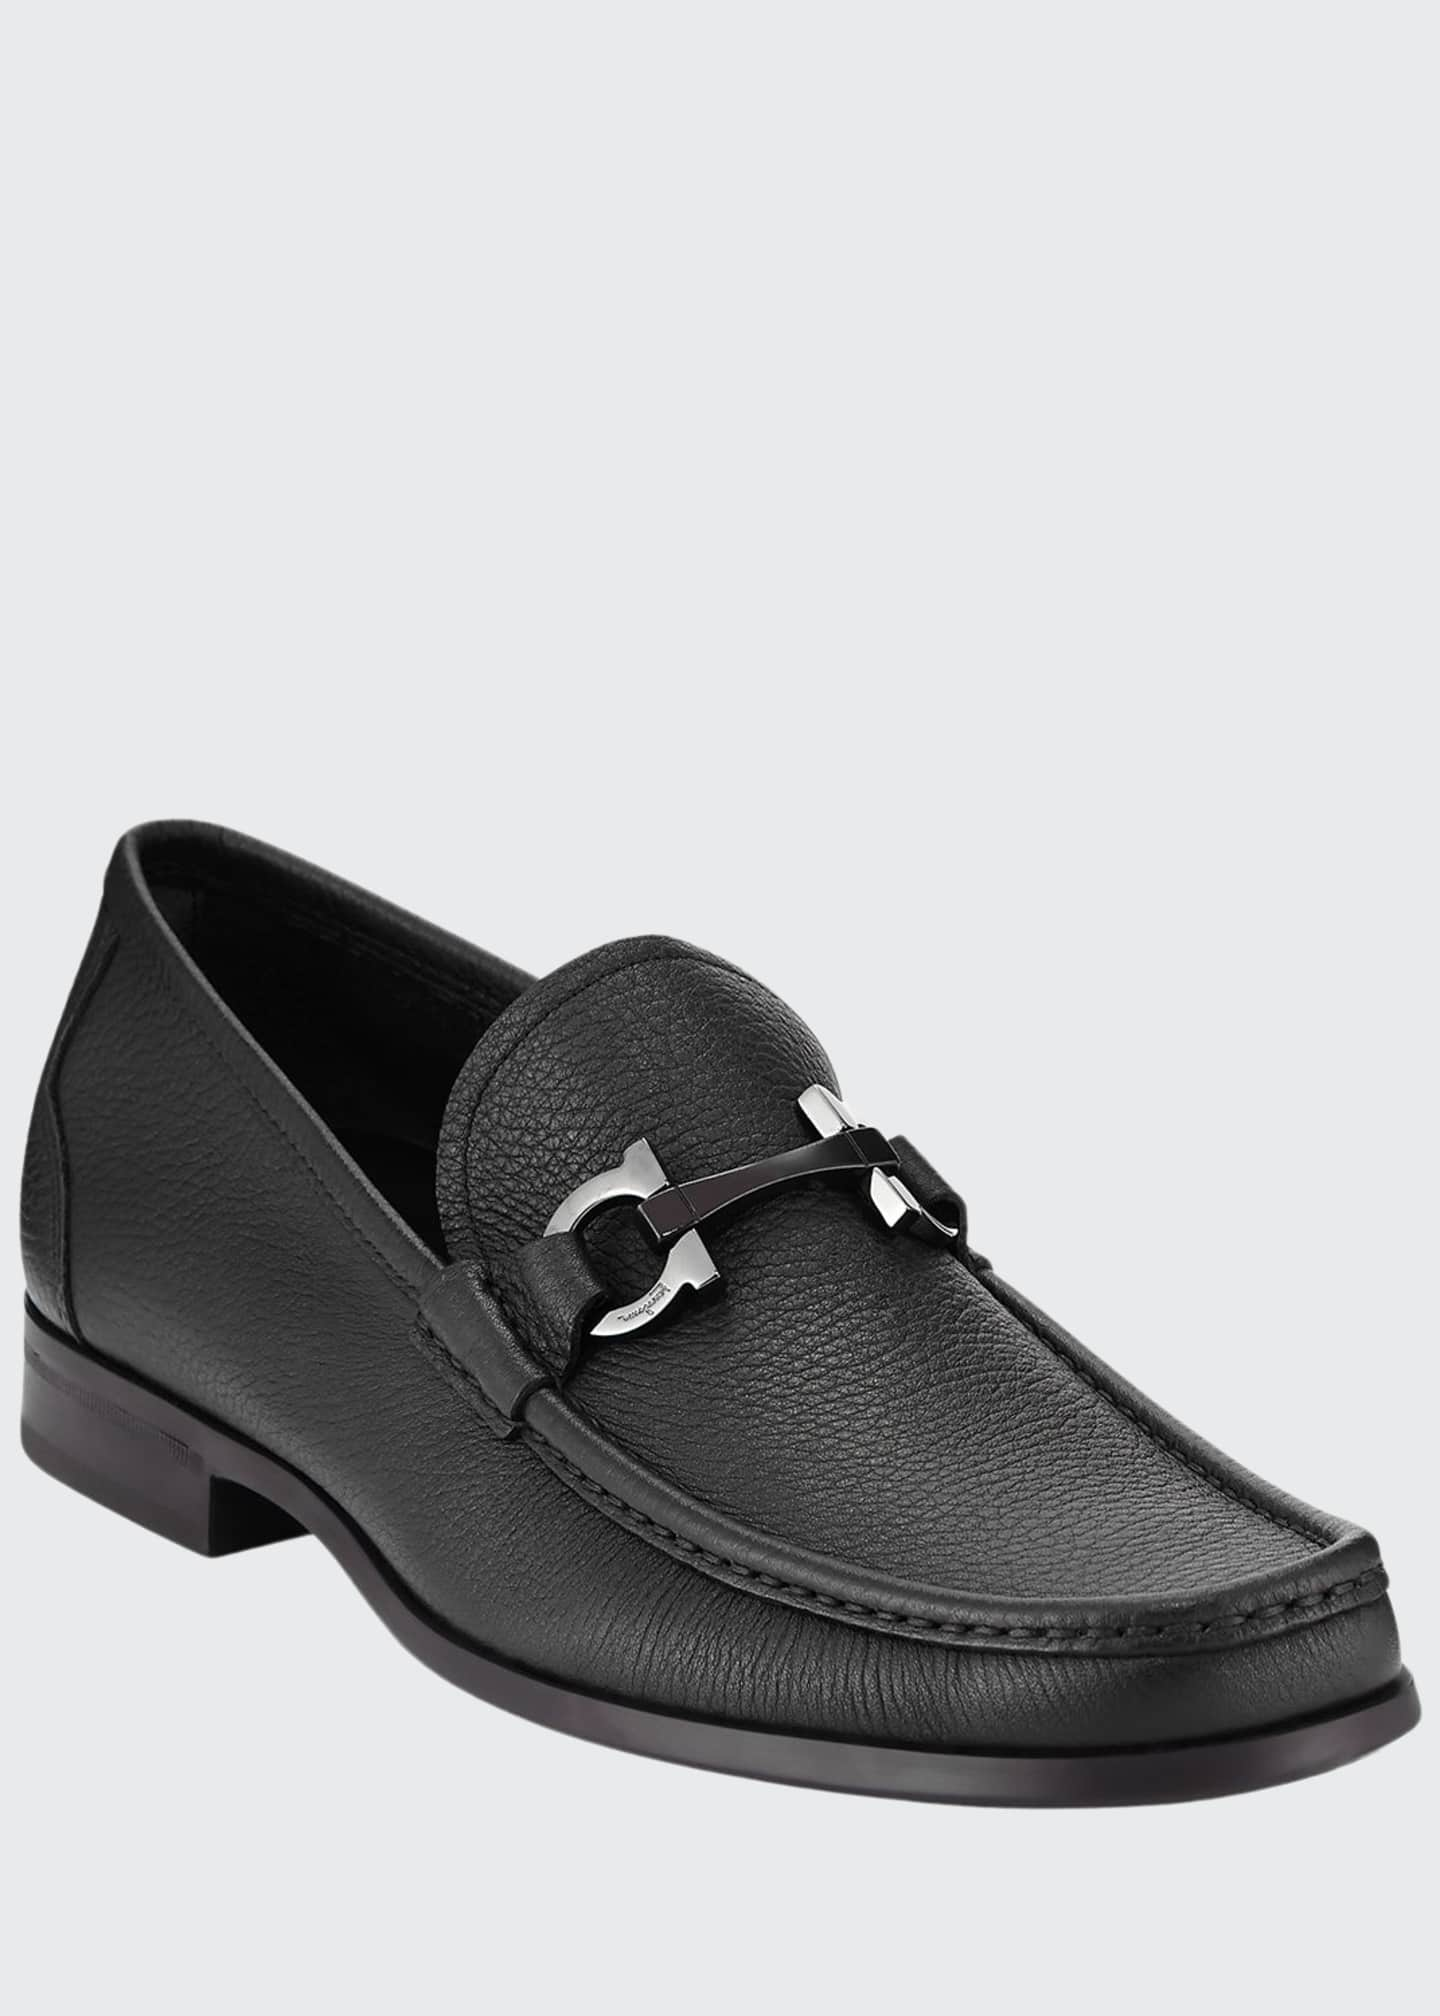 Image 1 of 5: Men's Grained Calf Leather Bit Loafer